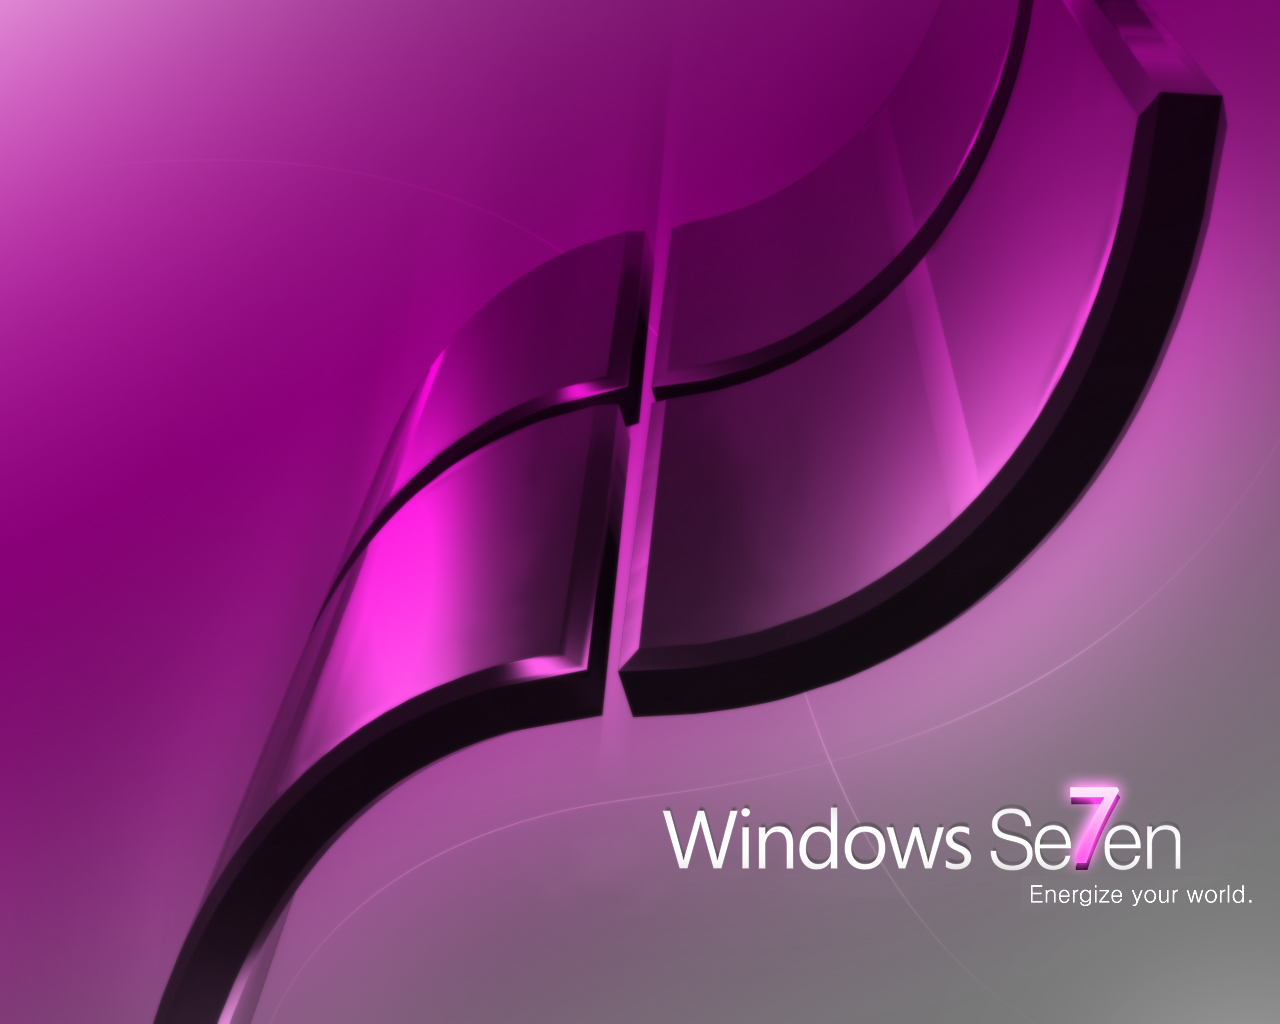 windows_seven_pink_7_by_arandas